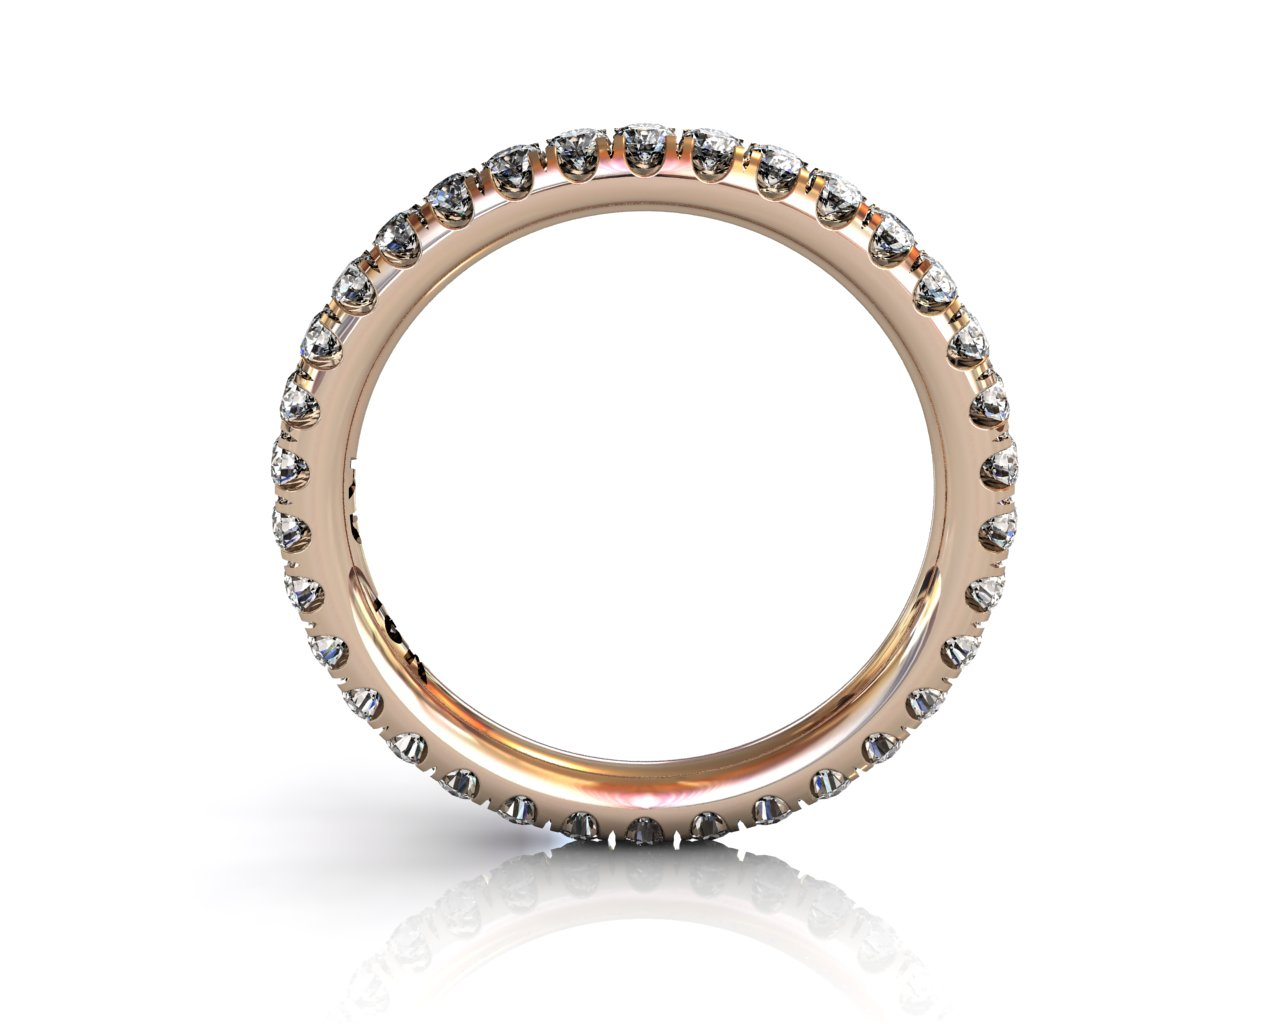 Wedding Bands Ladies Diamonds Craponia 24 Stone 0.74 TCW 3.0g 18kt Rose Gold